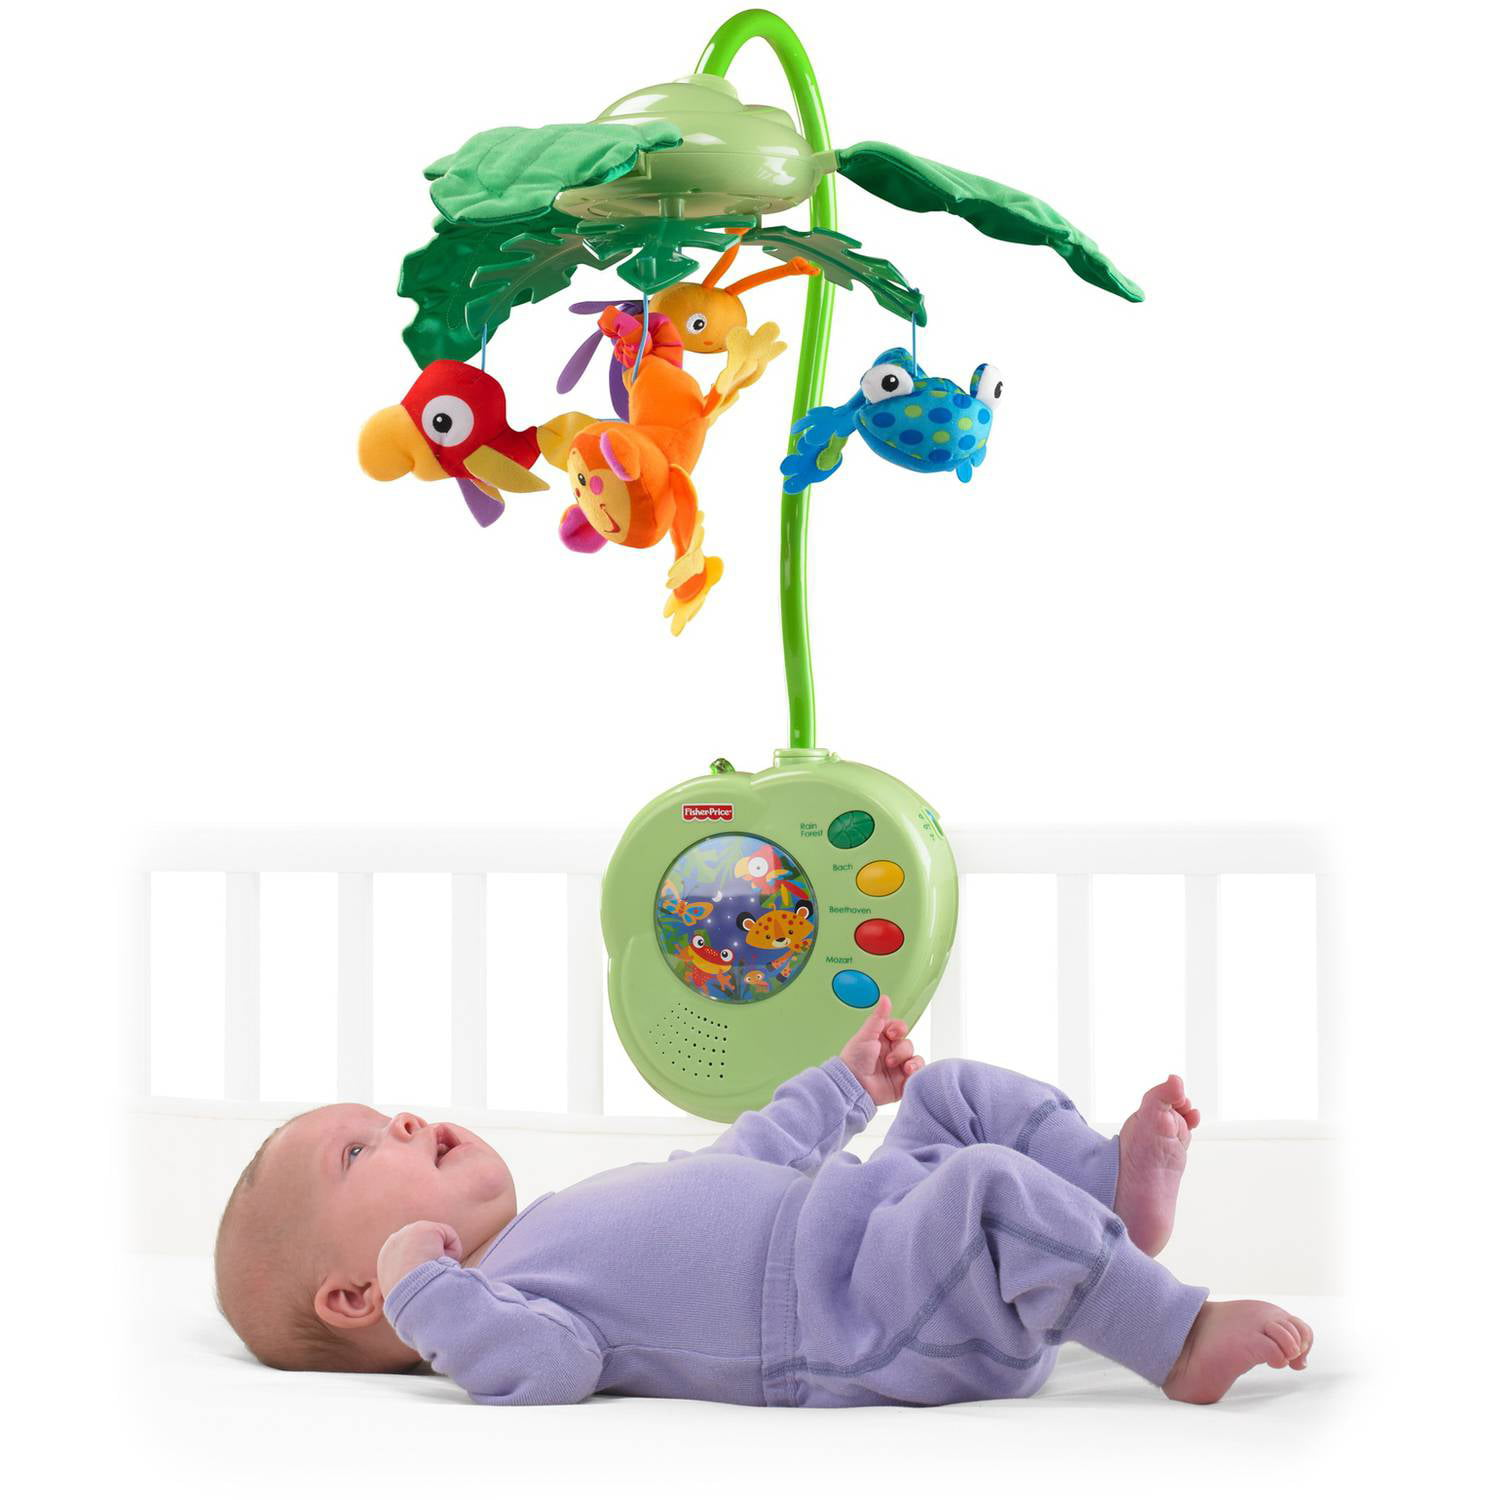 3ed38848e48 Fisher-Price Rainforest Peek-a-Boo Leaves Musical Mobile - Walmart.com